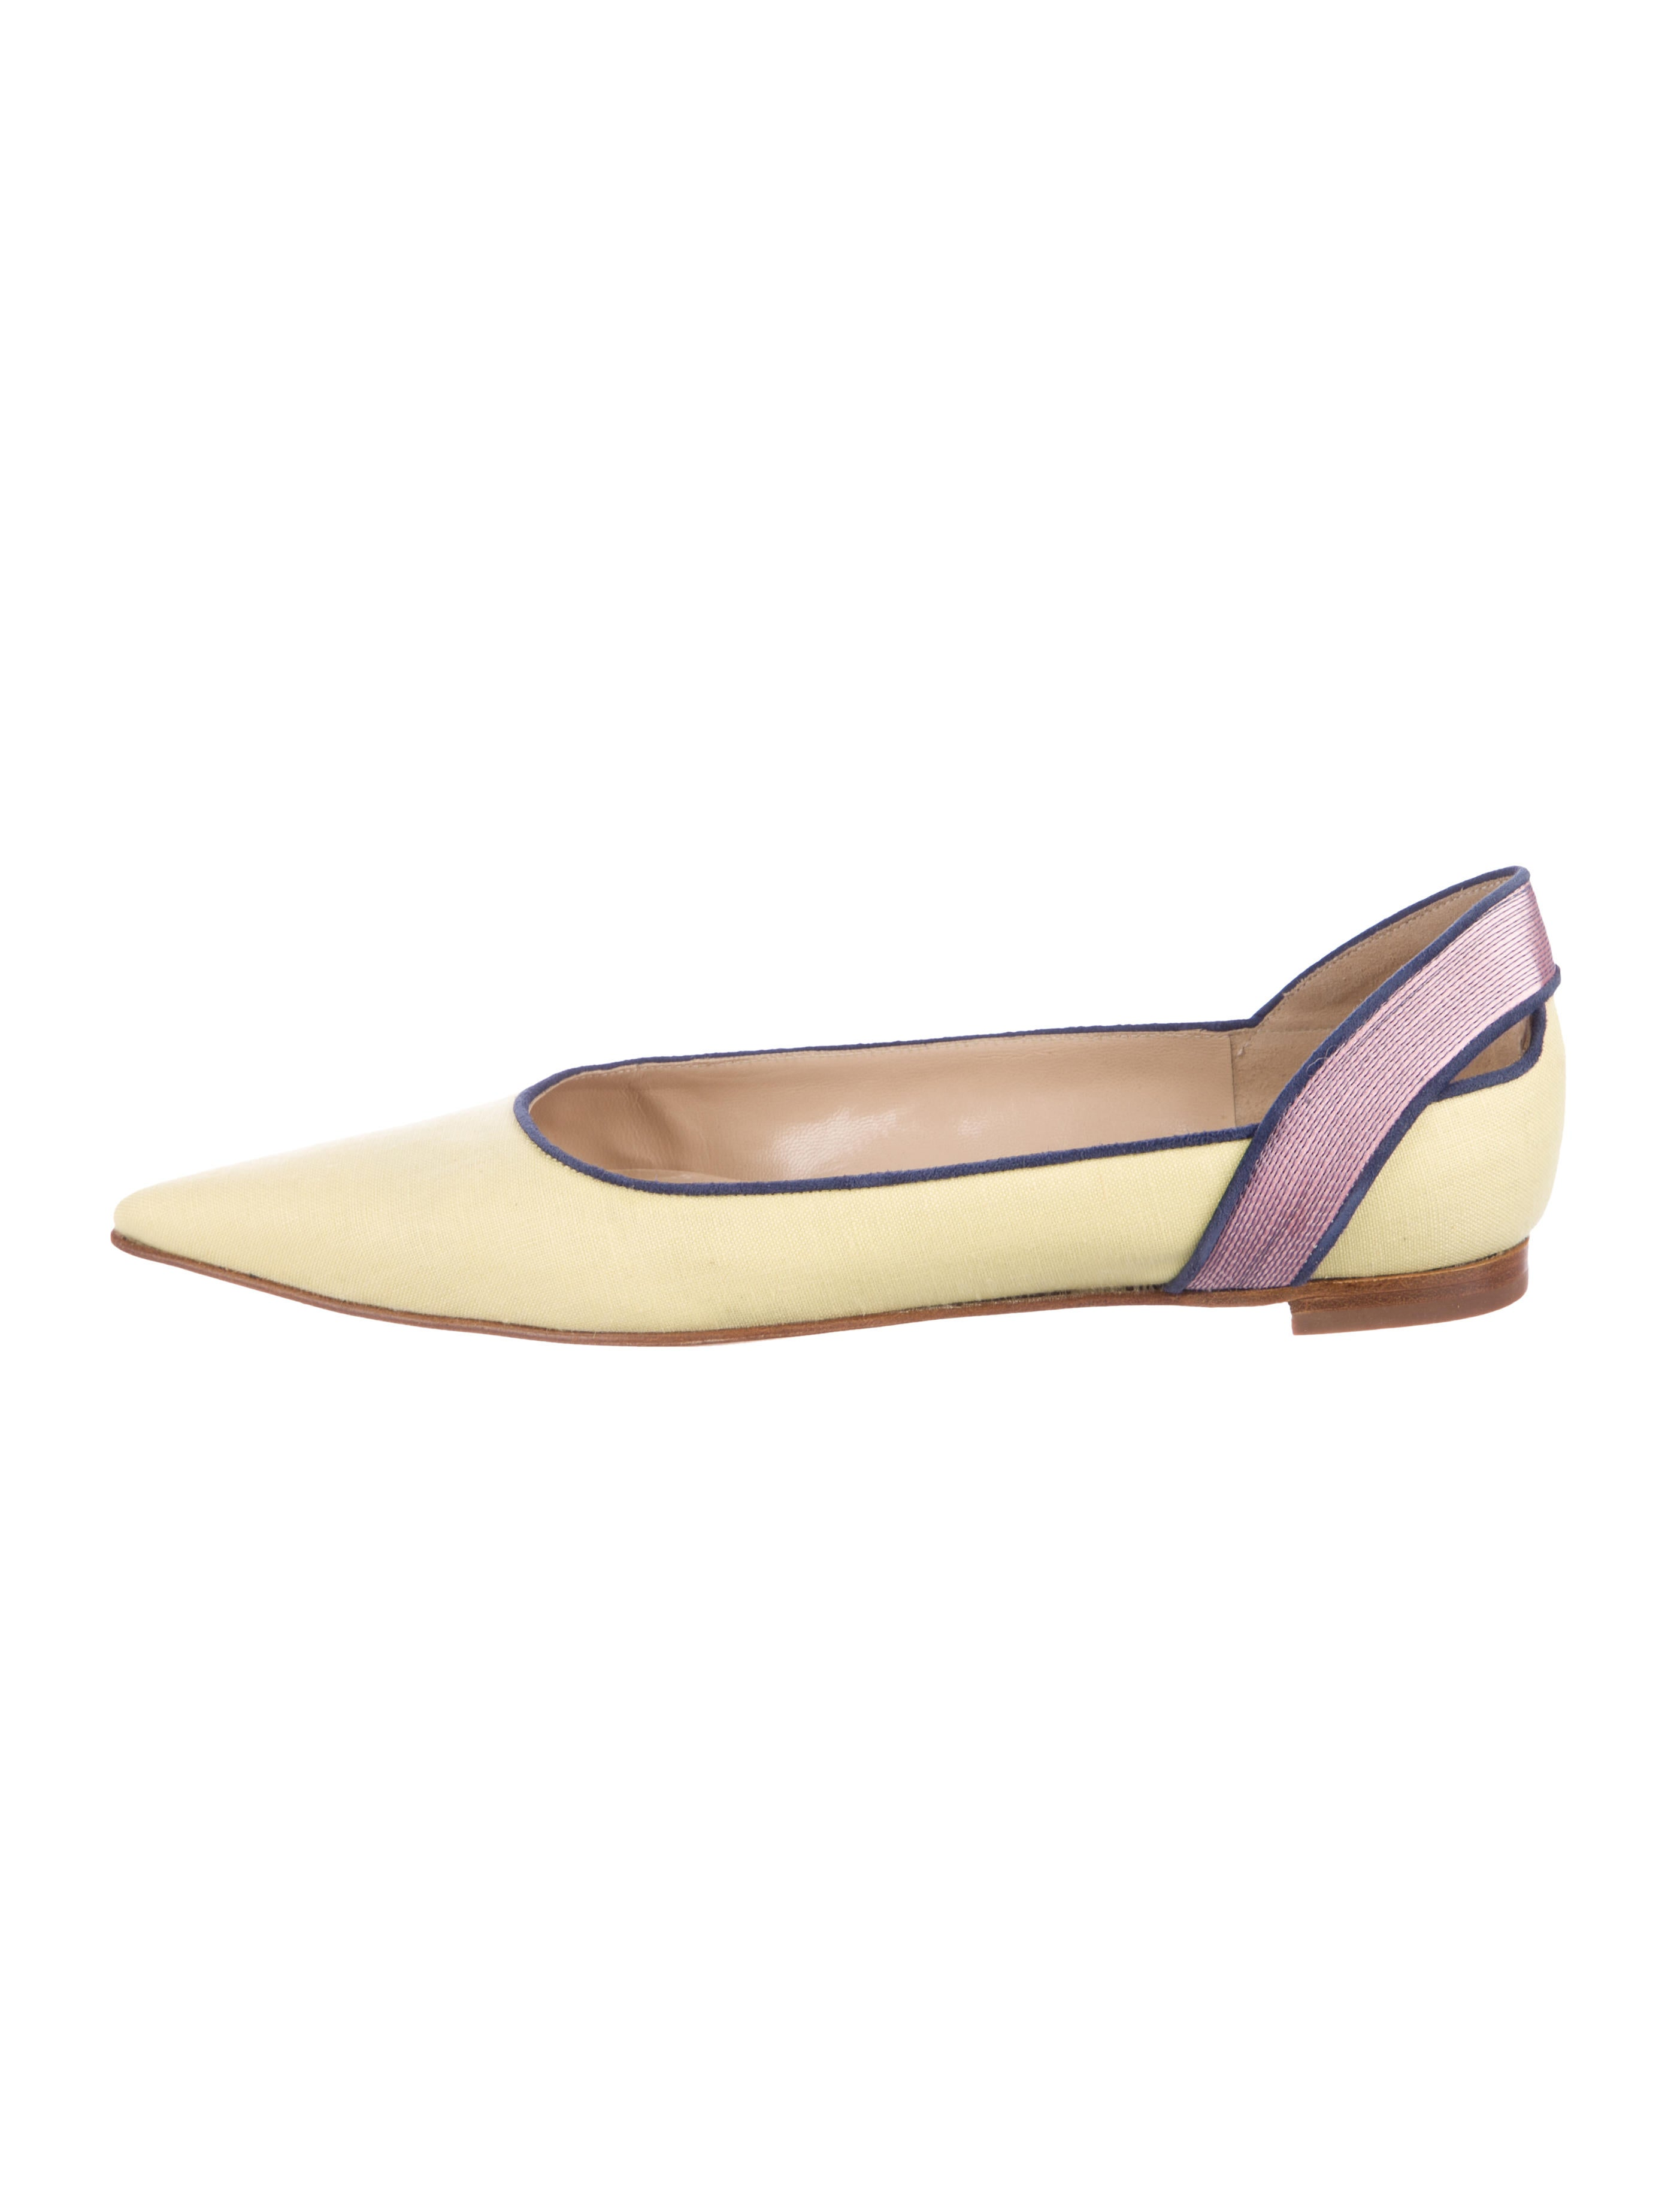 online cheap online Manolo Blahnik Canvas Round-Toe Flats store online fashionable online free shipping discounts best place cheap price wwP7i